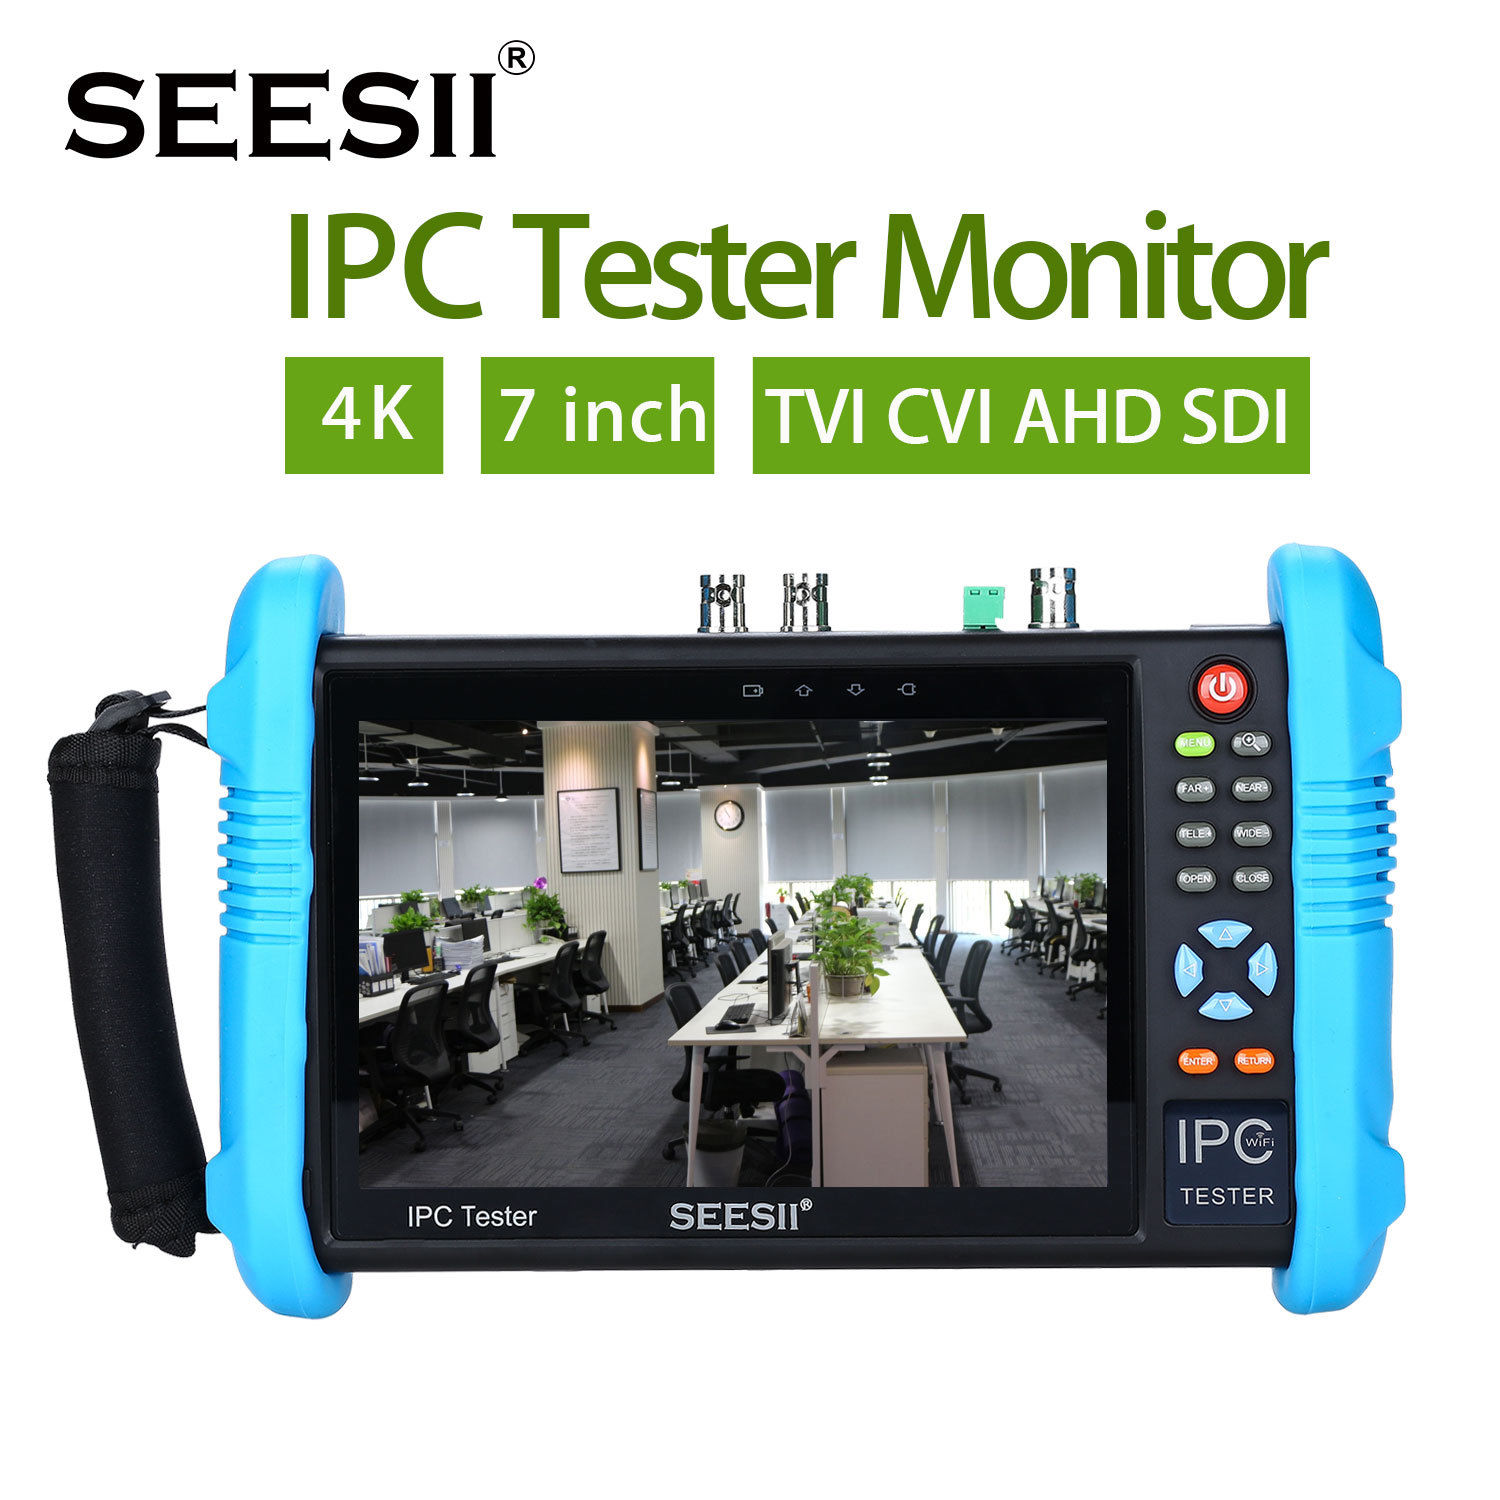 SEESII 7Touch Screen H.265 IP Camera Tester 4K 1080P IPC Camera CCTV TVI CVI AHD SDI CVBS HDMl PTZ Control Analog Video Test